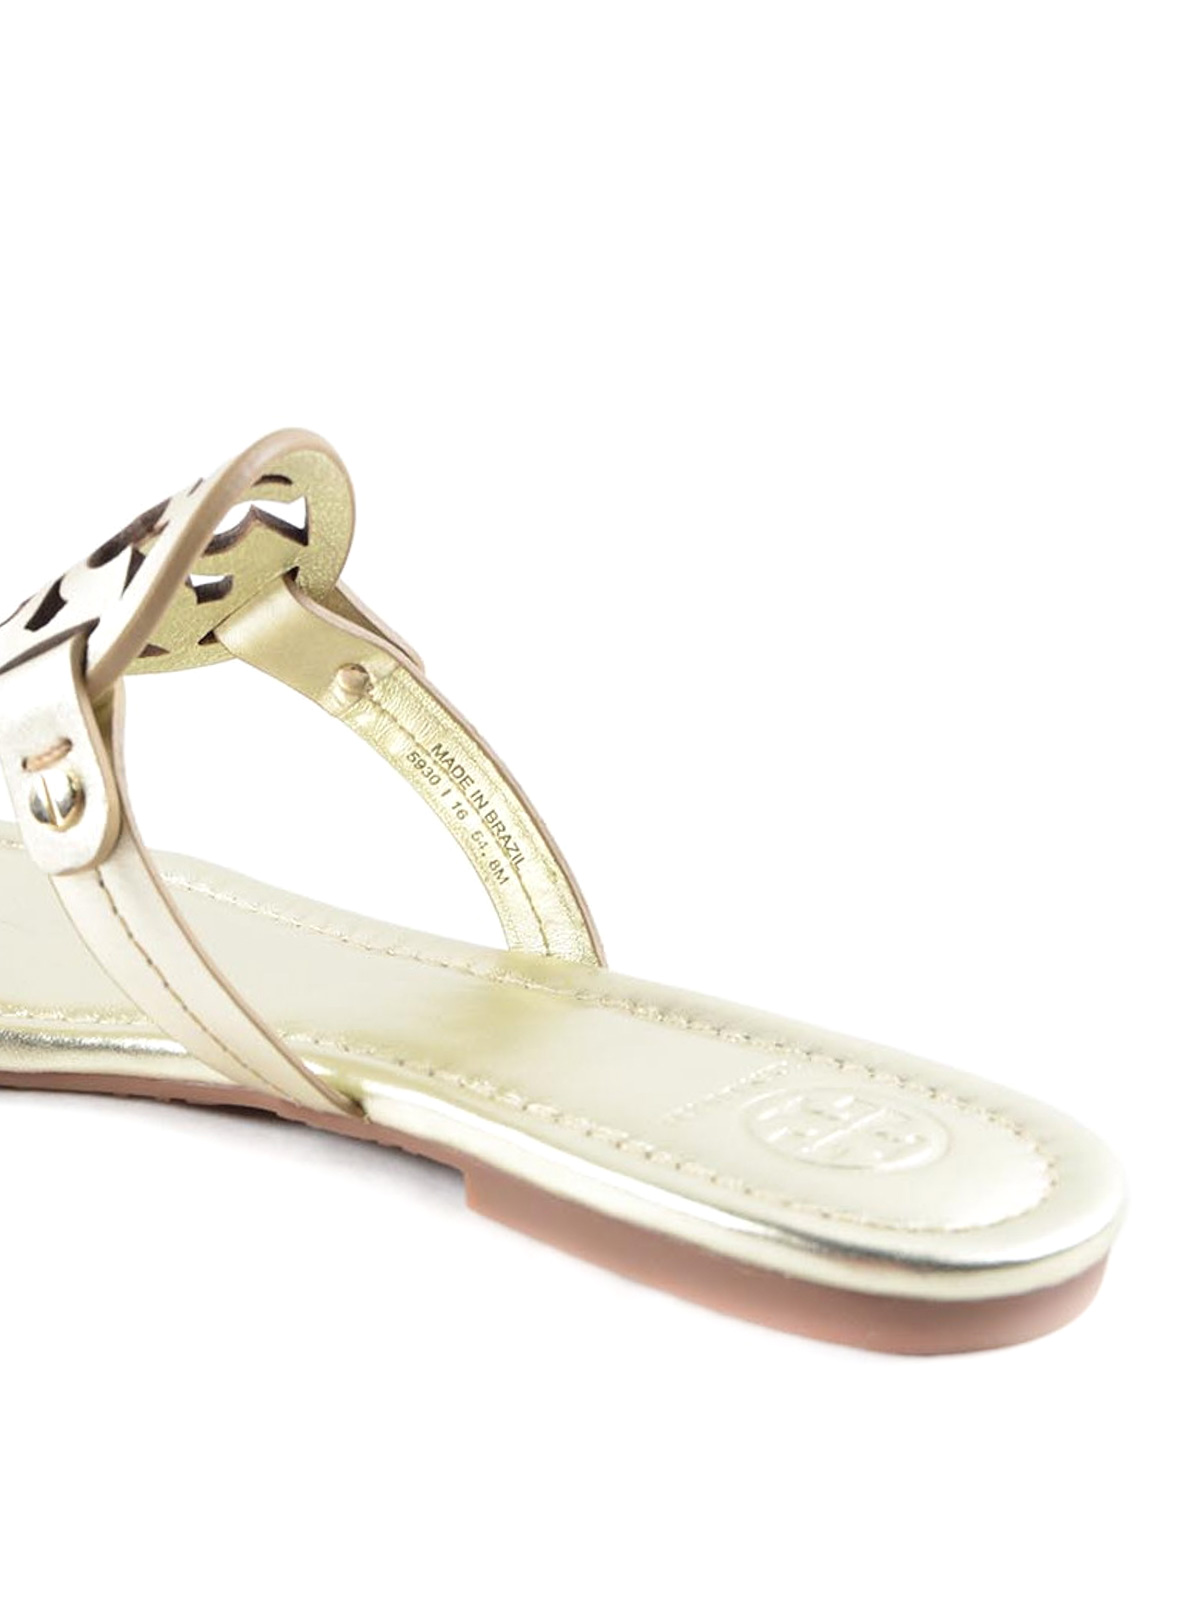 dc17106da516c Tory Burch - Miller leather thong sandals - sandals - 36540 723